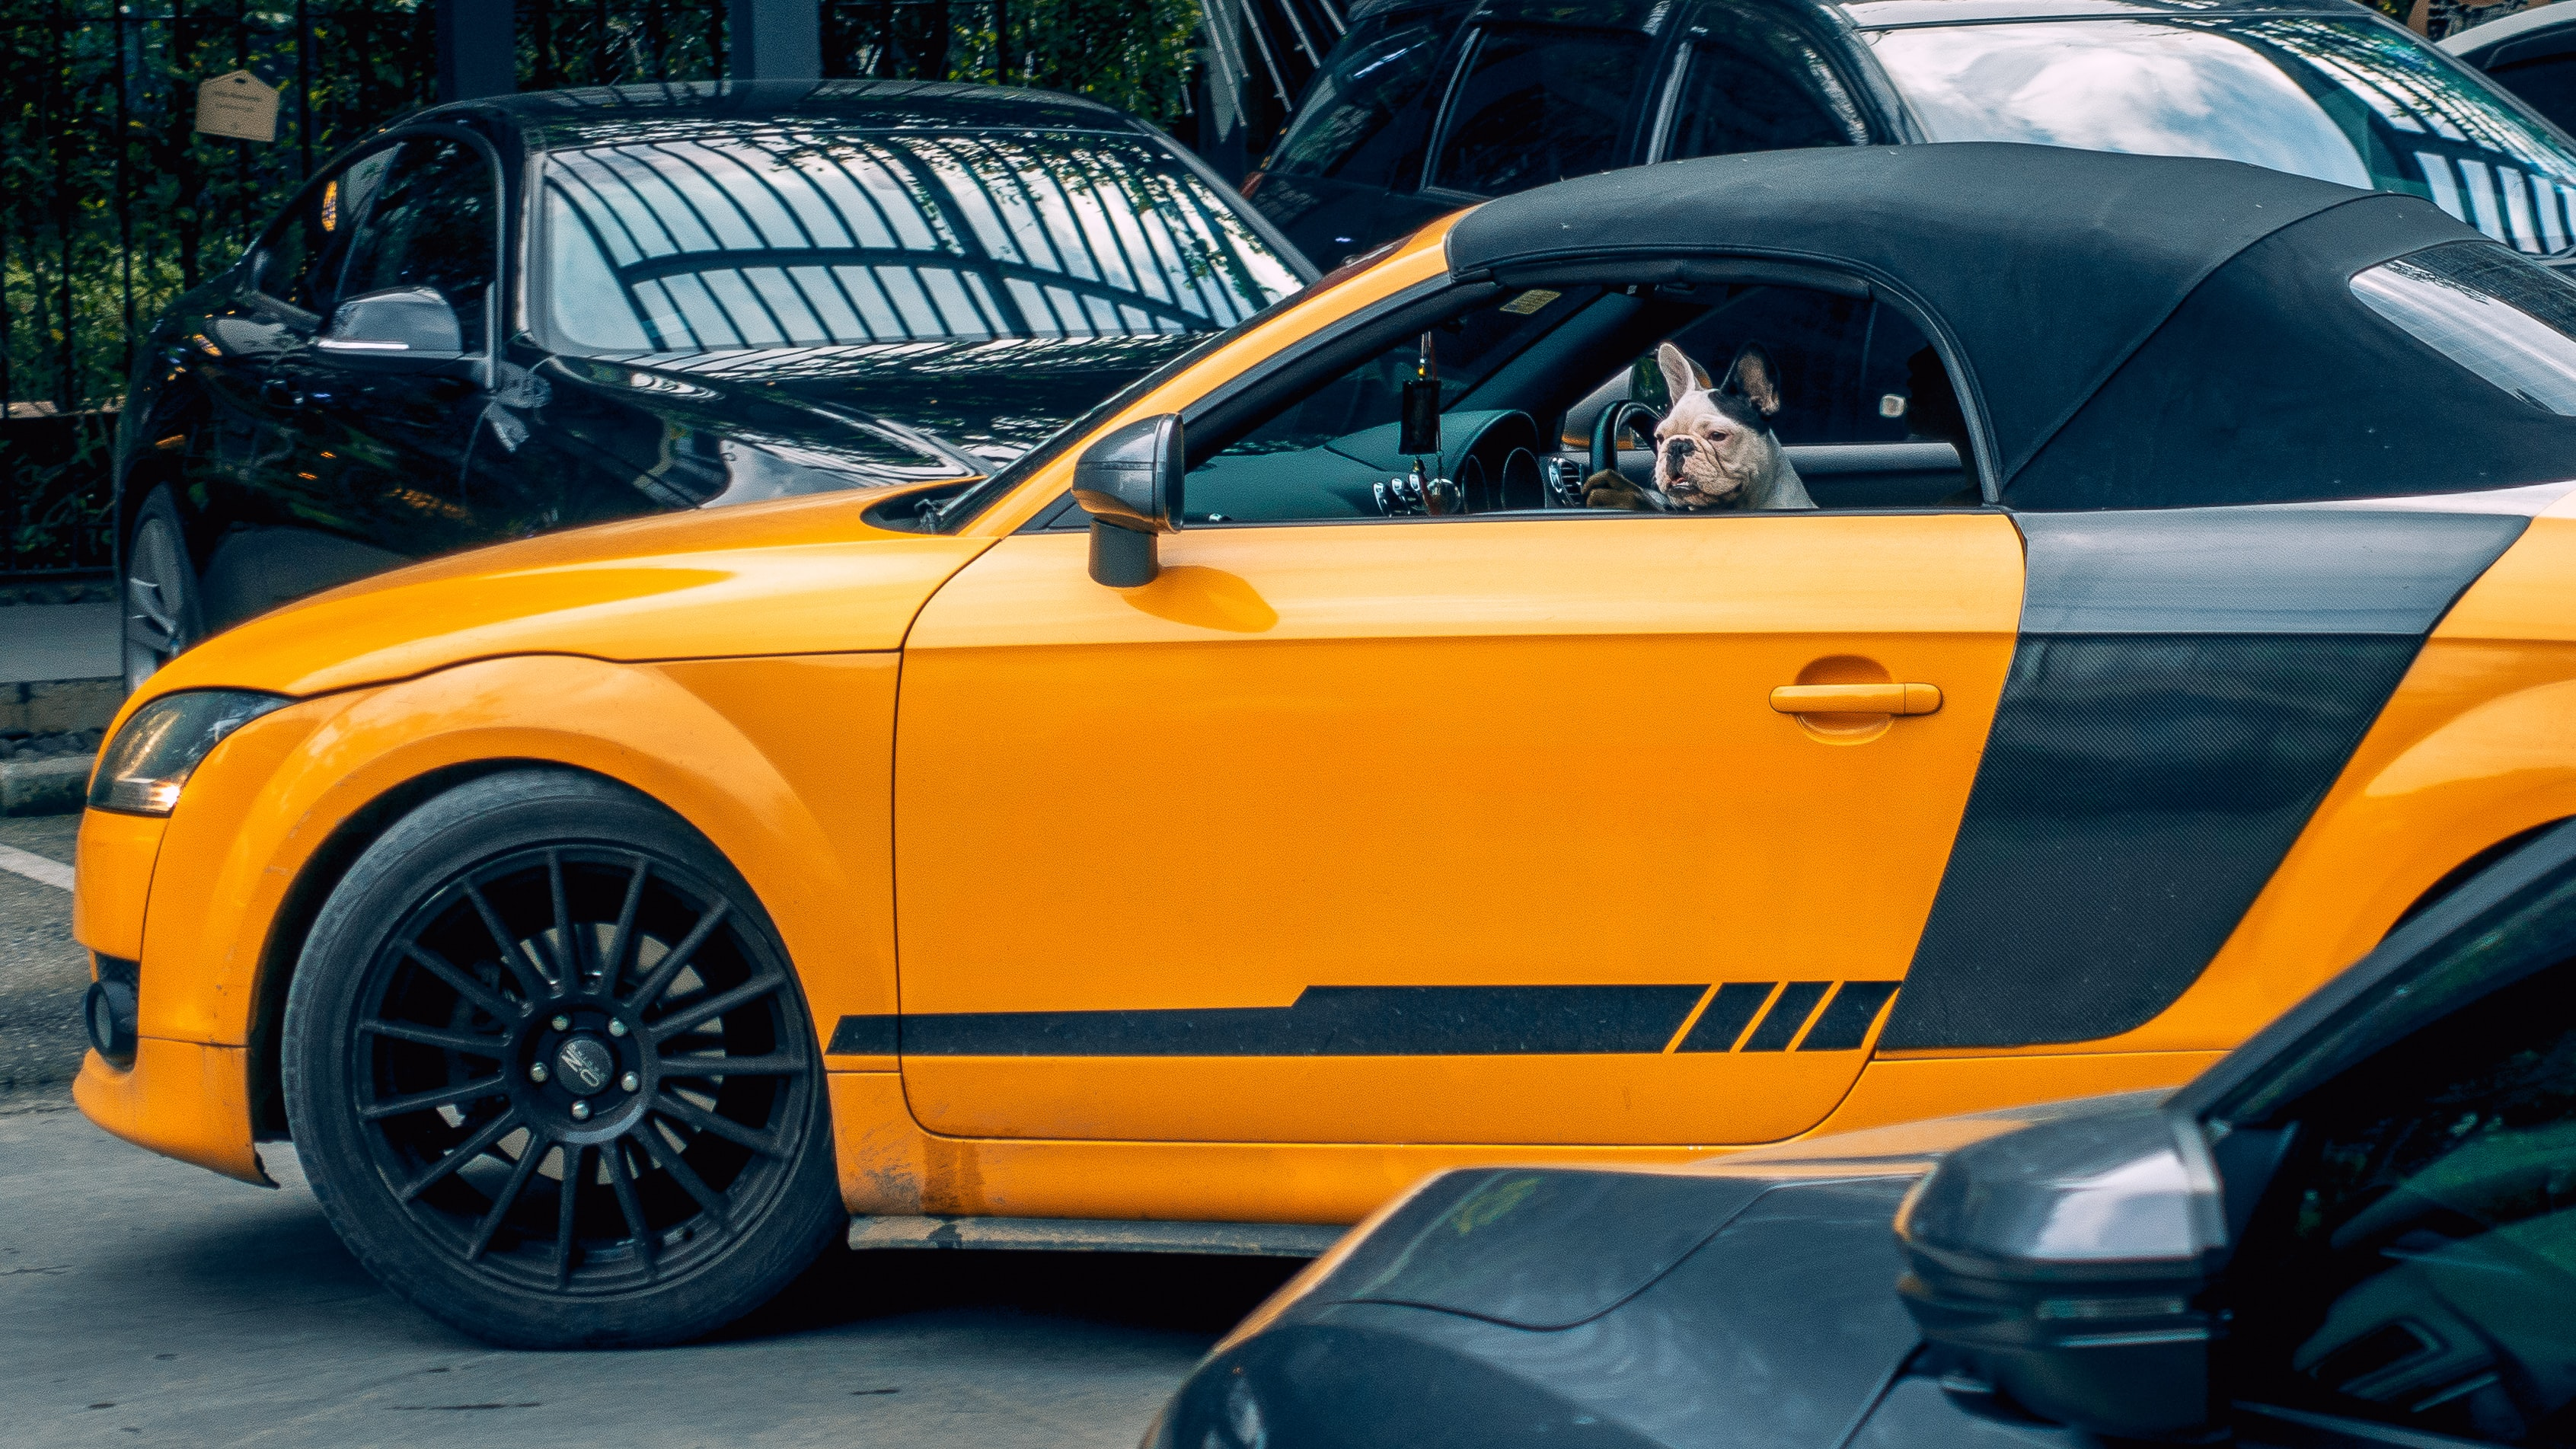 yellow and black coupe